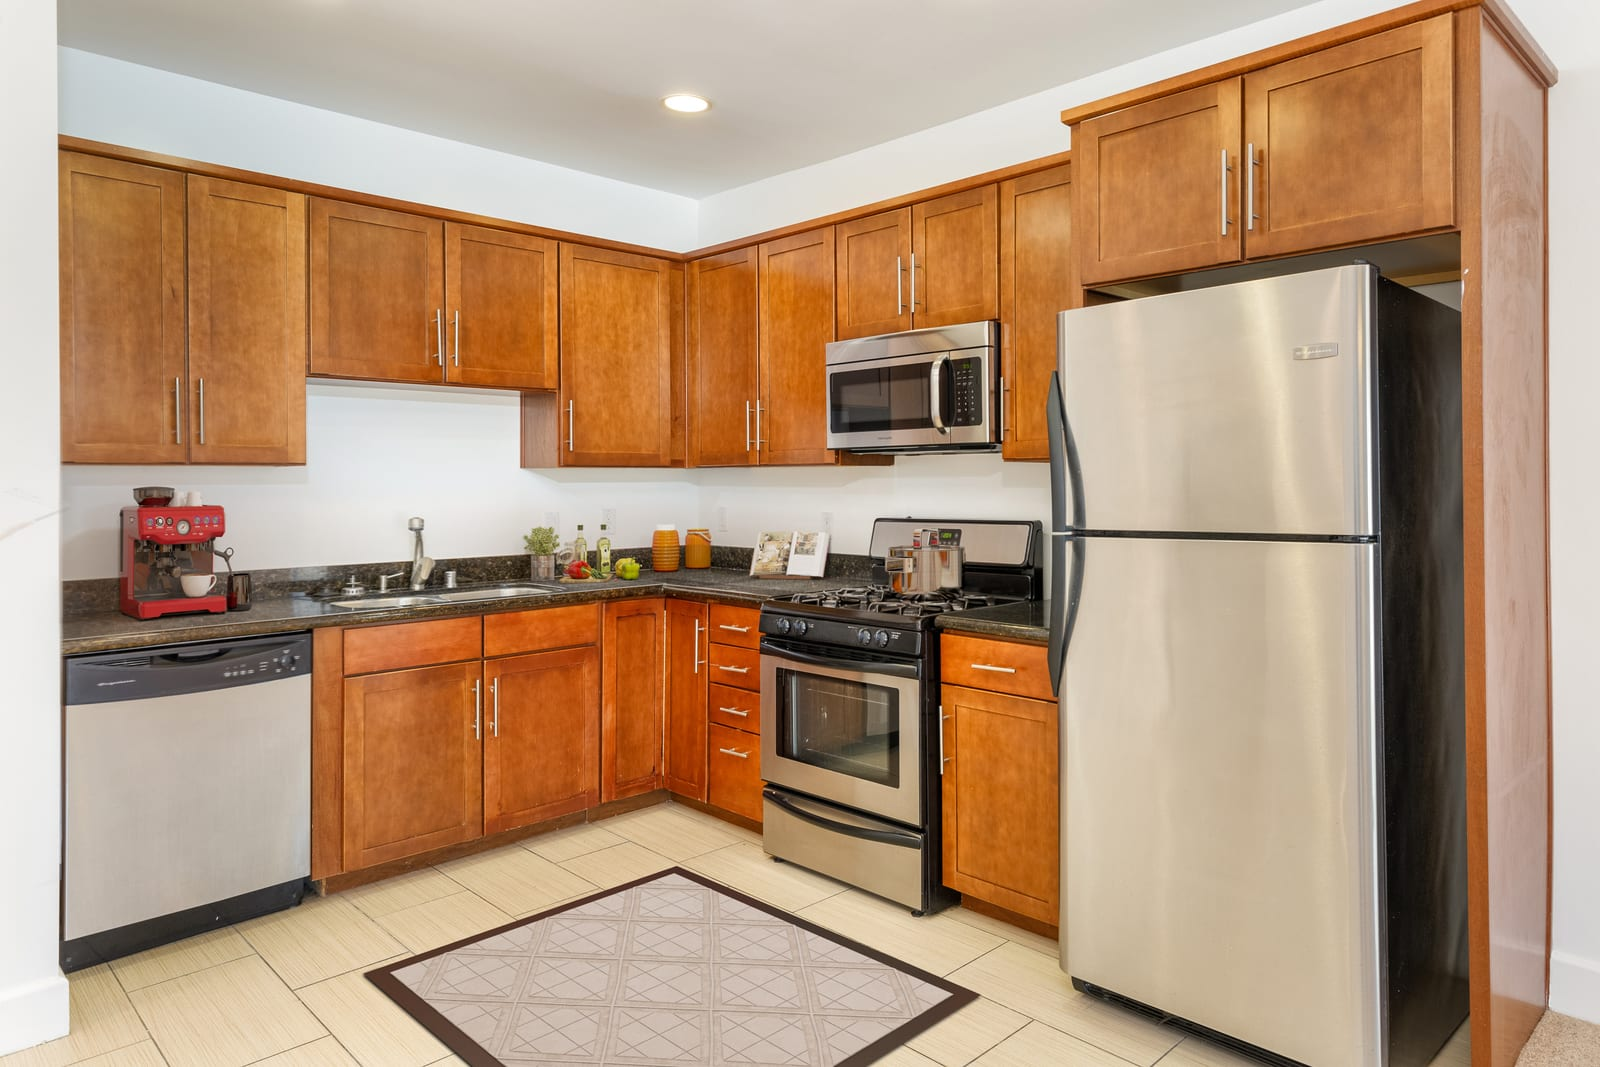 Fitted kitchen at The Social, North Hollywood, California